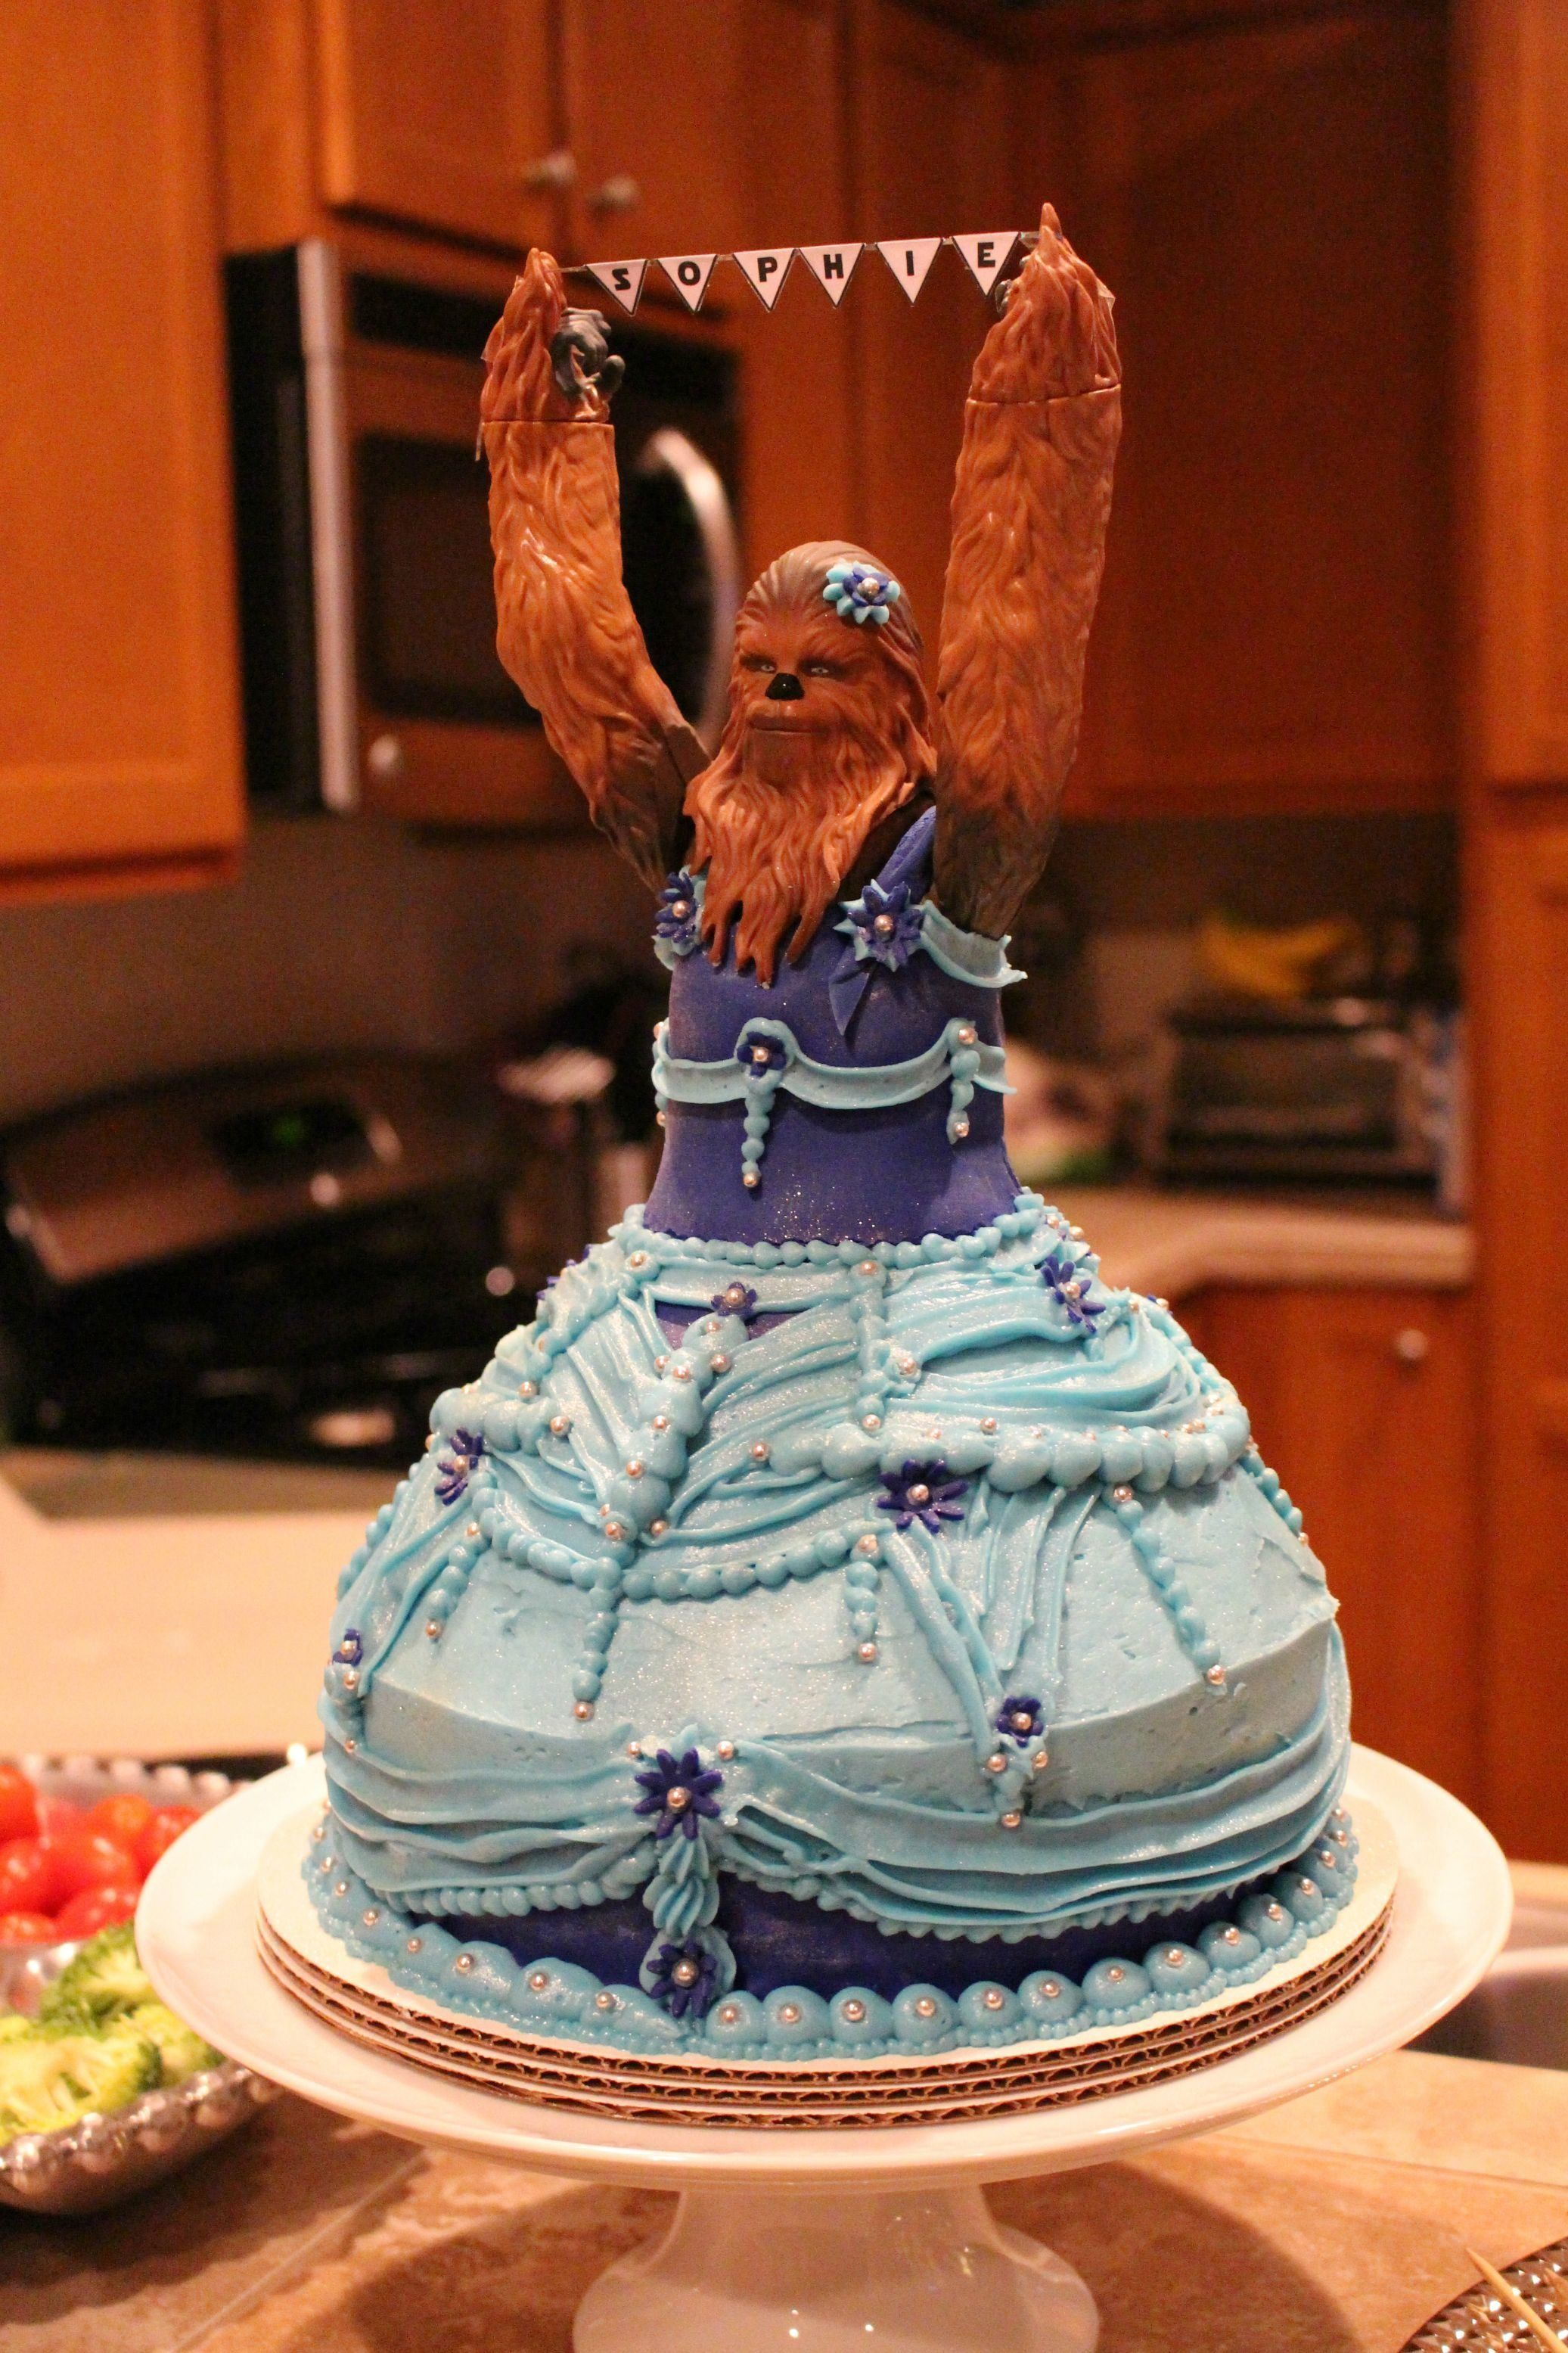 """""""Sophie was elated when the cake arrived. She said, 'Oooh! Chewbacca is so pretty, Mom!' Then she promptly"""